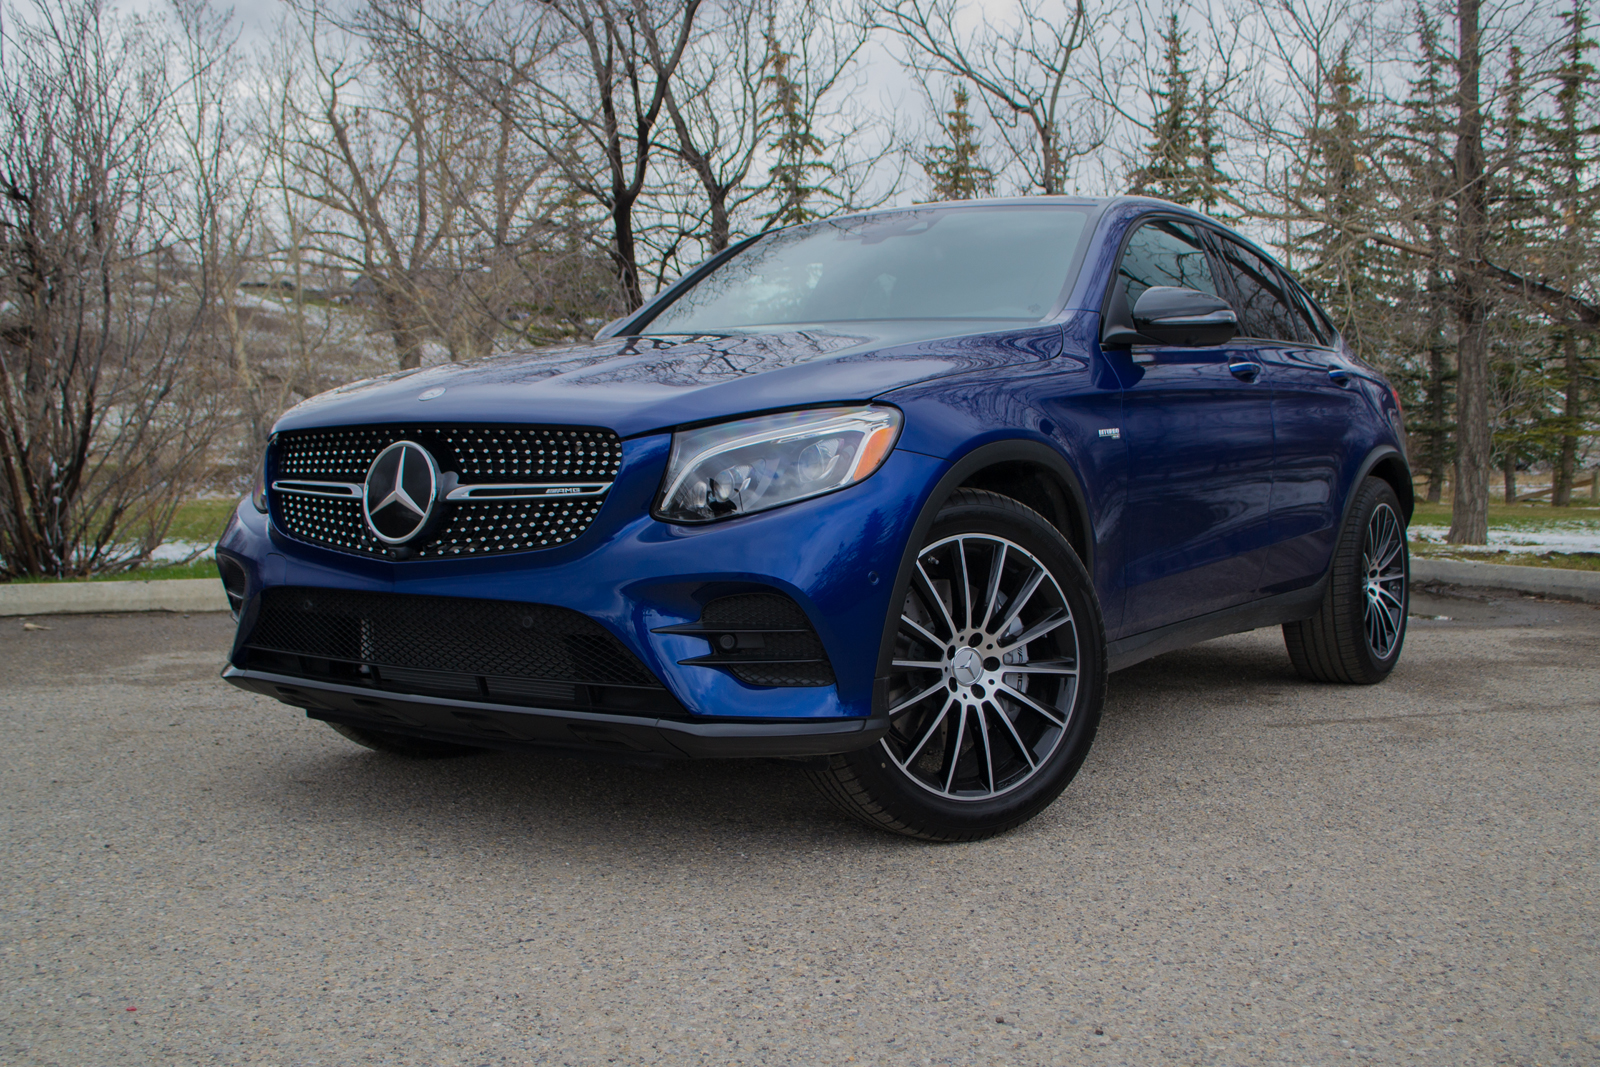 https://www.autoguide.com/blog/wp-content/gallery/2017-mercedes-benz-glc-class-coupe-review/2017-Mercedes-AMG-GLC43-Coupe-ILIKA-1600x1067-006.jpg